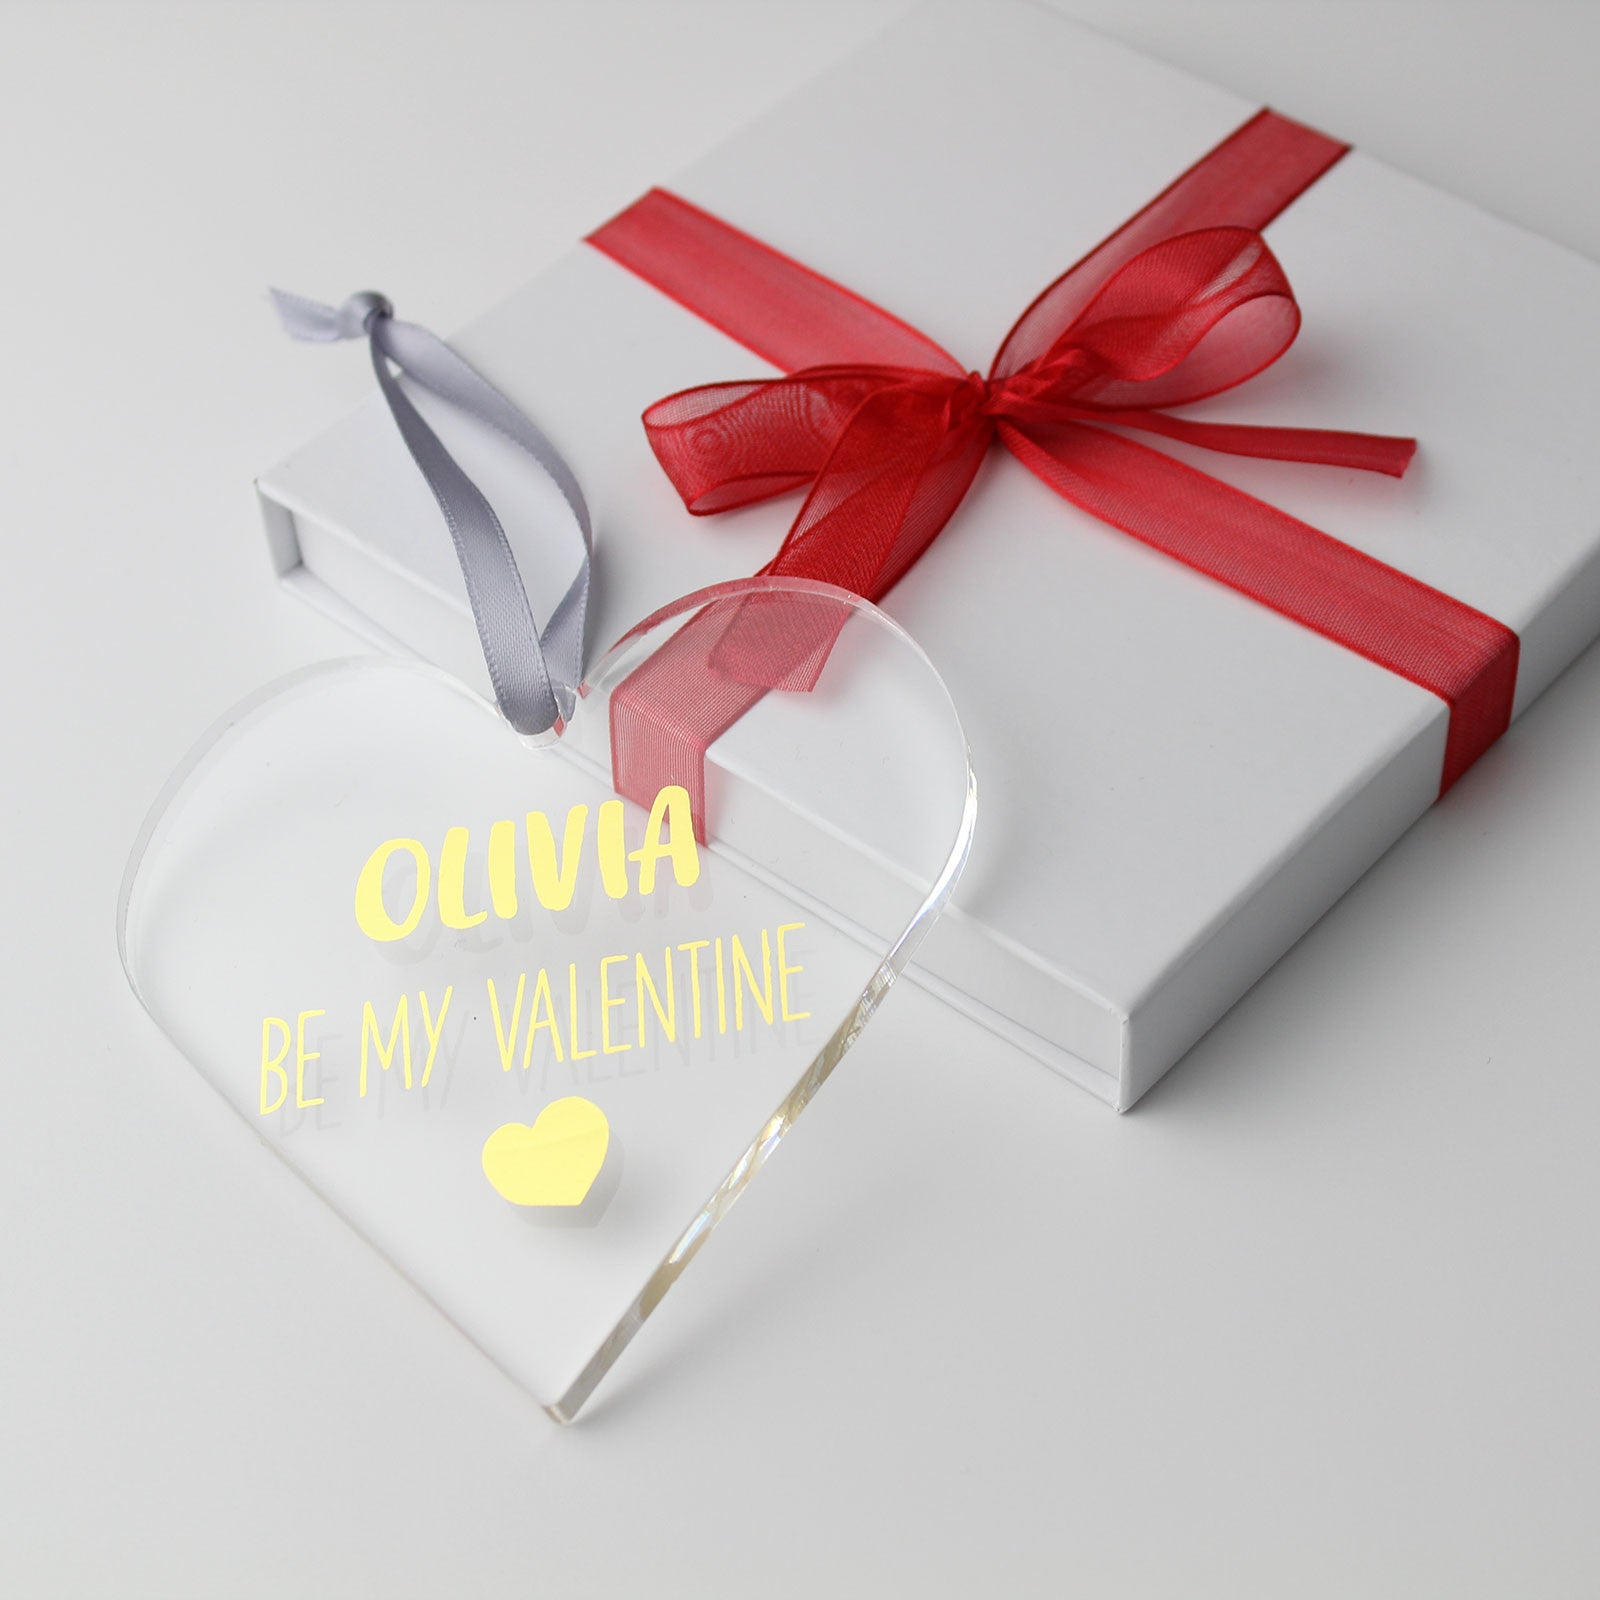 Personalised Name Be My Valentine Foiled Heart in Gift Box